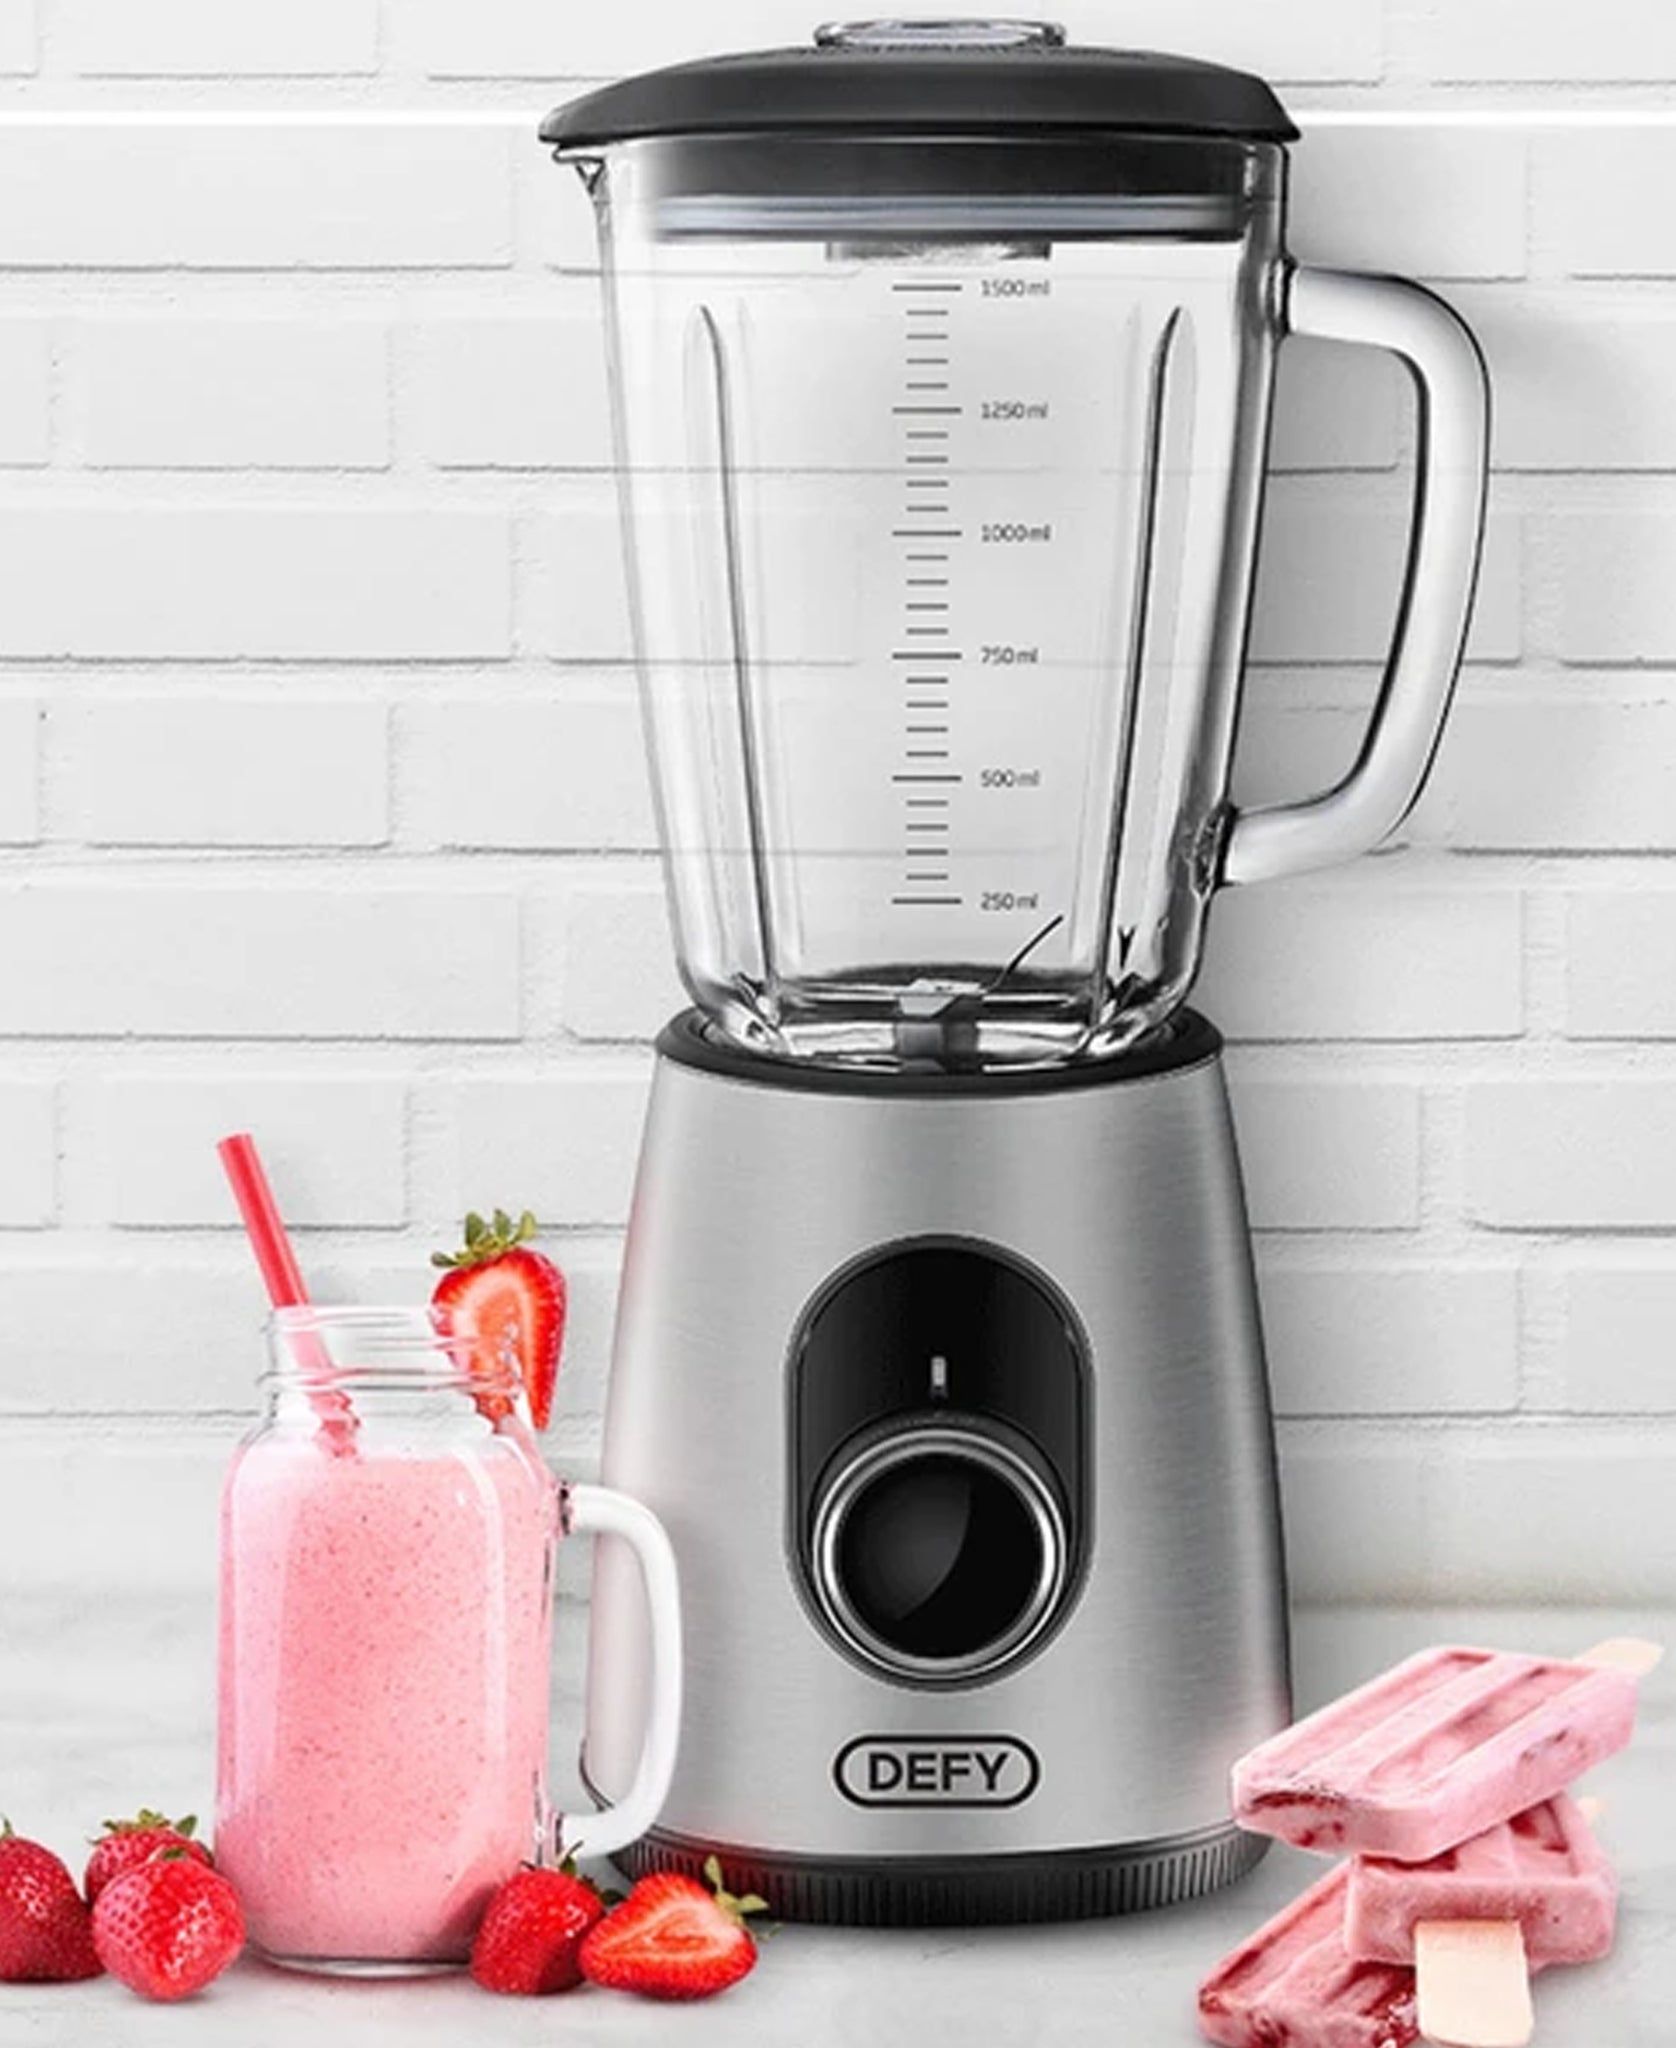 Defy Table Blender InoxTB7802